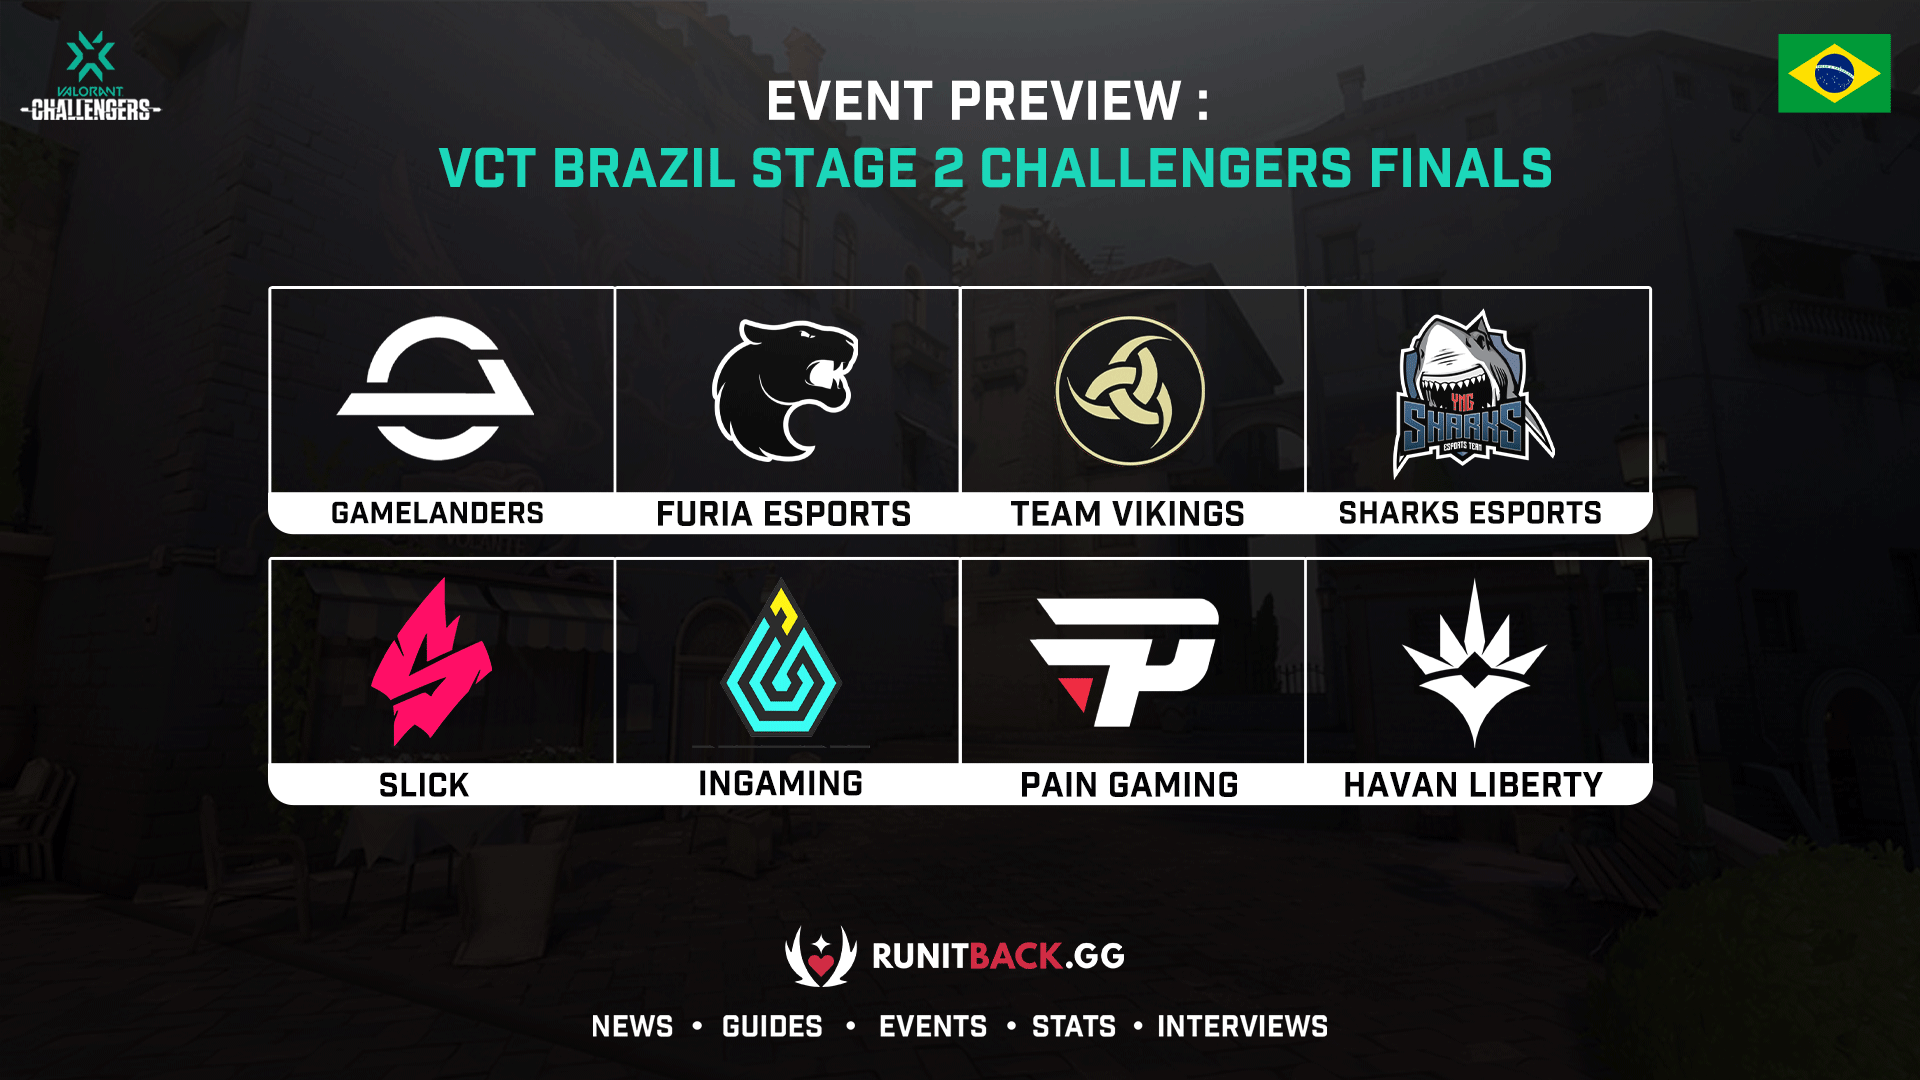 Event Preview: VCT Brazil Stage 2 Challengers Finals